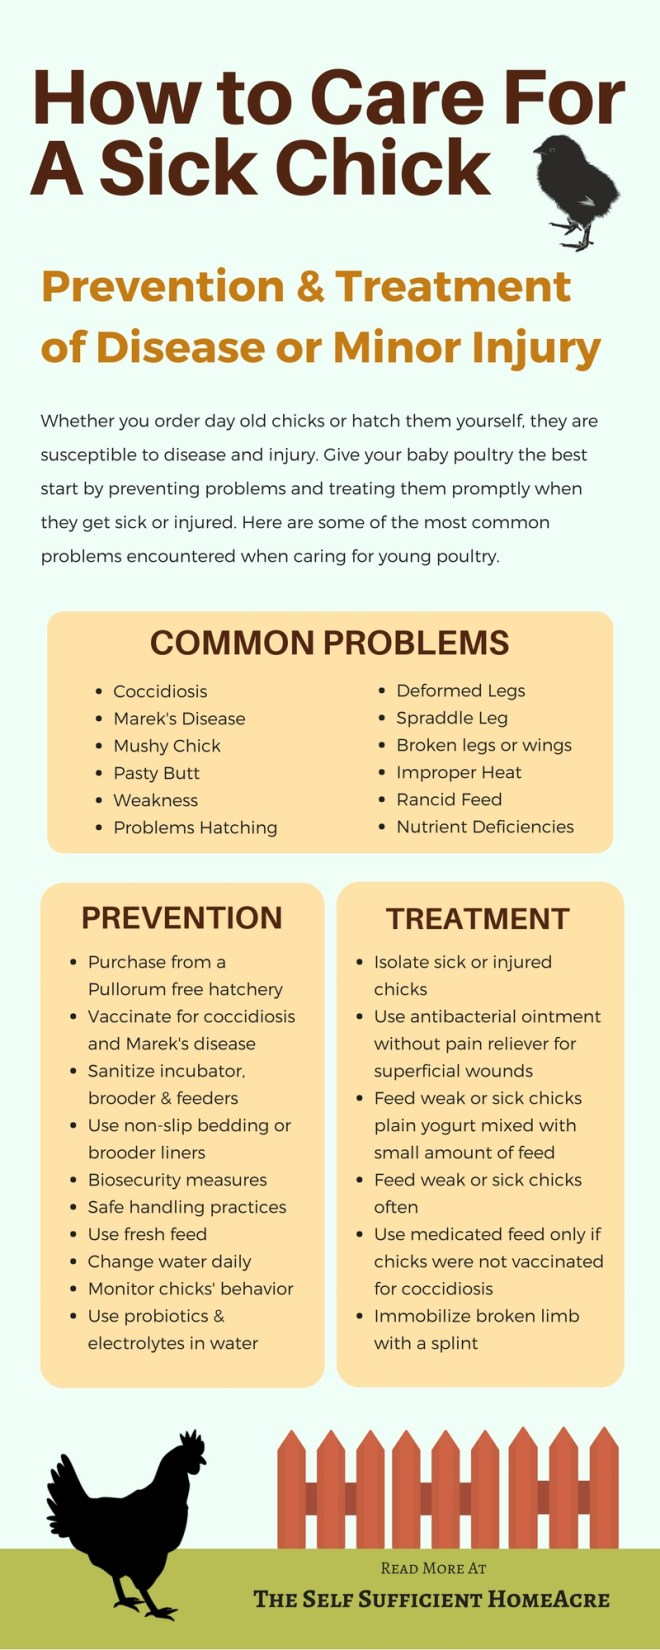 Sick Chick Infographic - The Self Sufficient HomeAcre